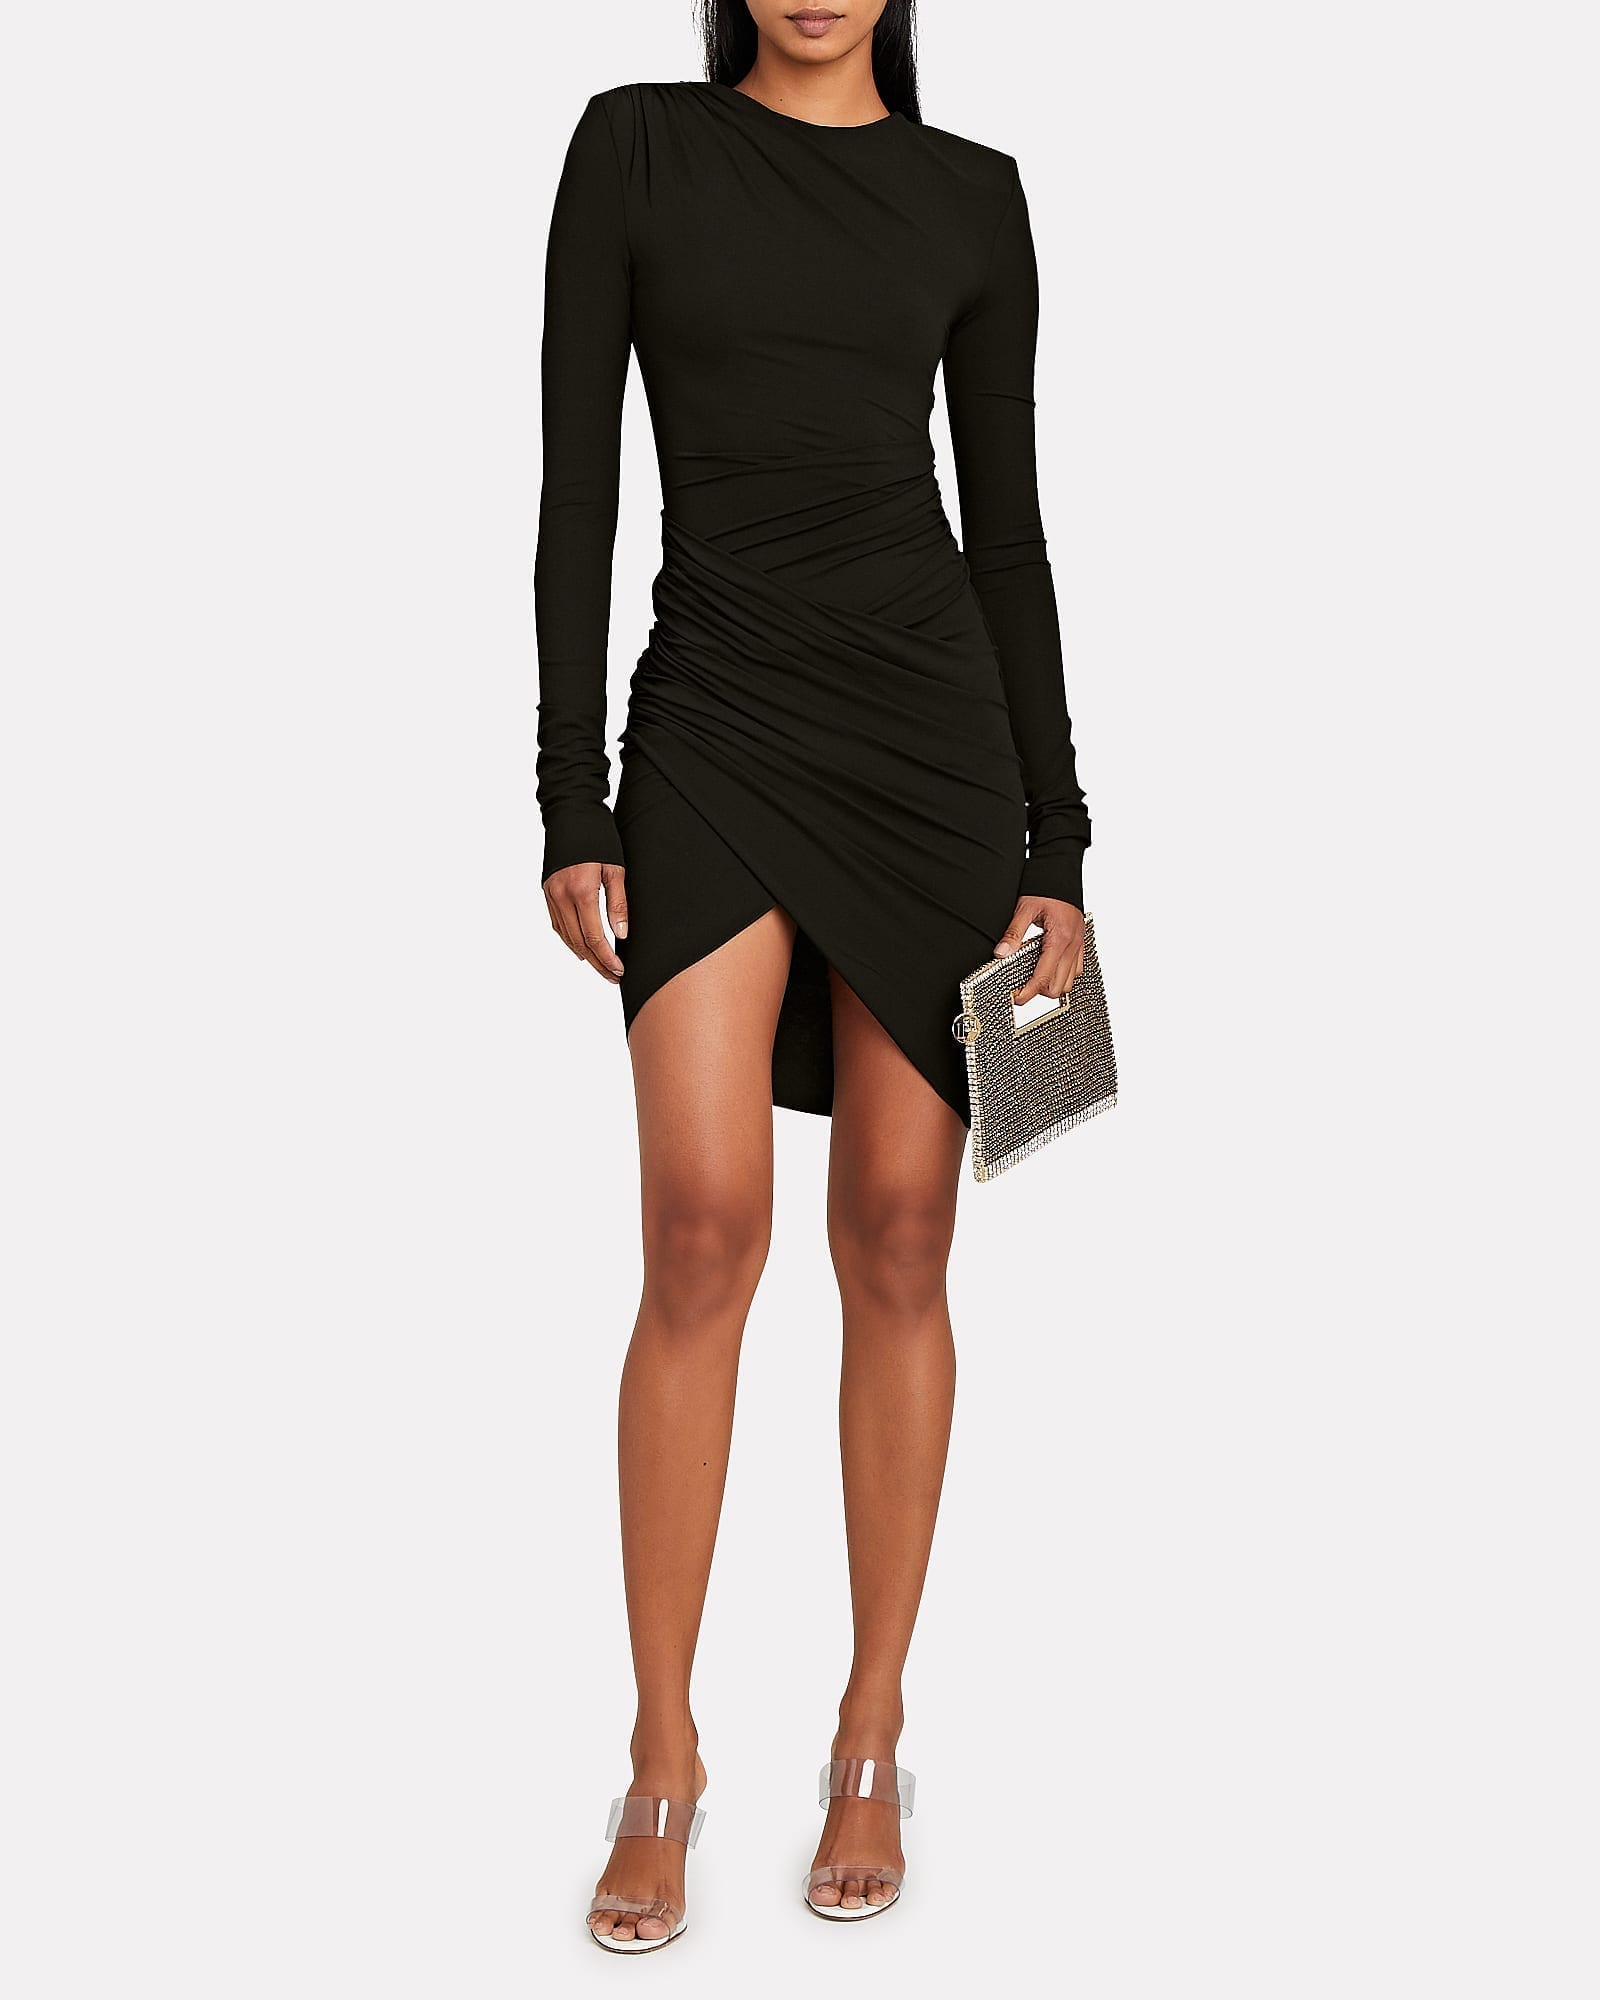 ALEXANDRE VAUTHIER Draped Jersey Long Sleeve Dress